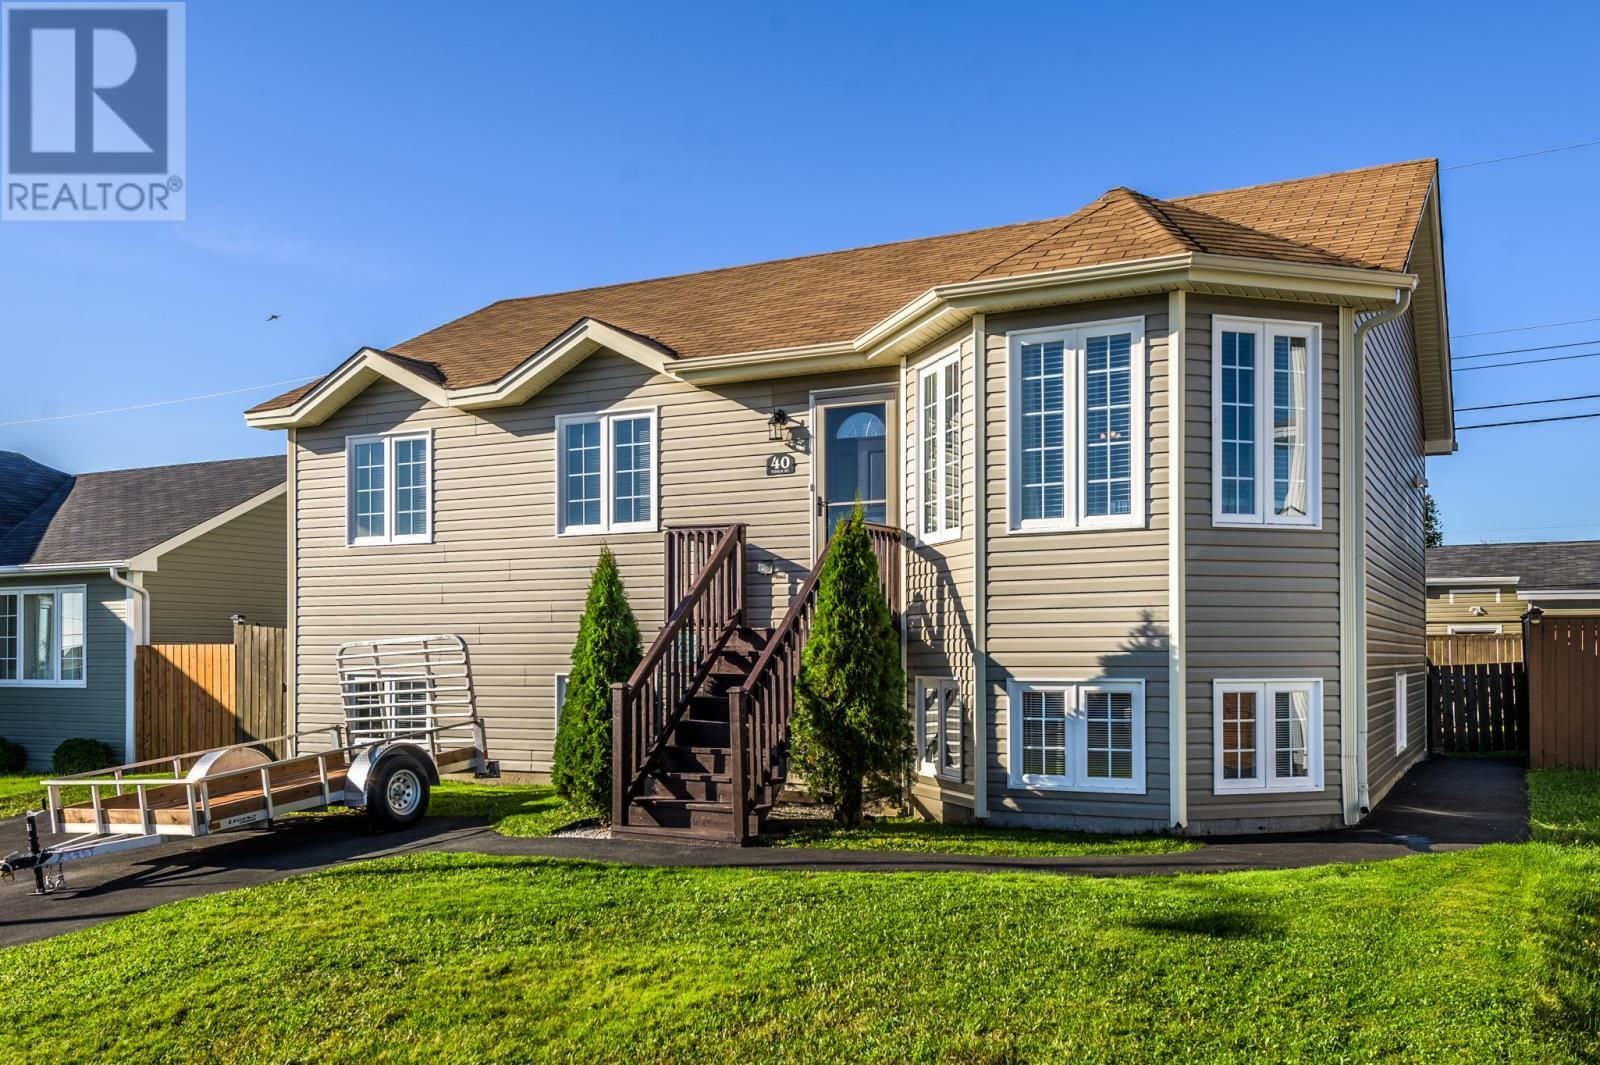 Main Photo: 40 Toslo Street in Paradise: House for sale : MLS®# 1237906